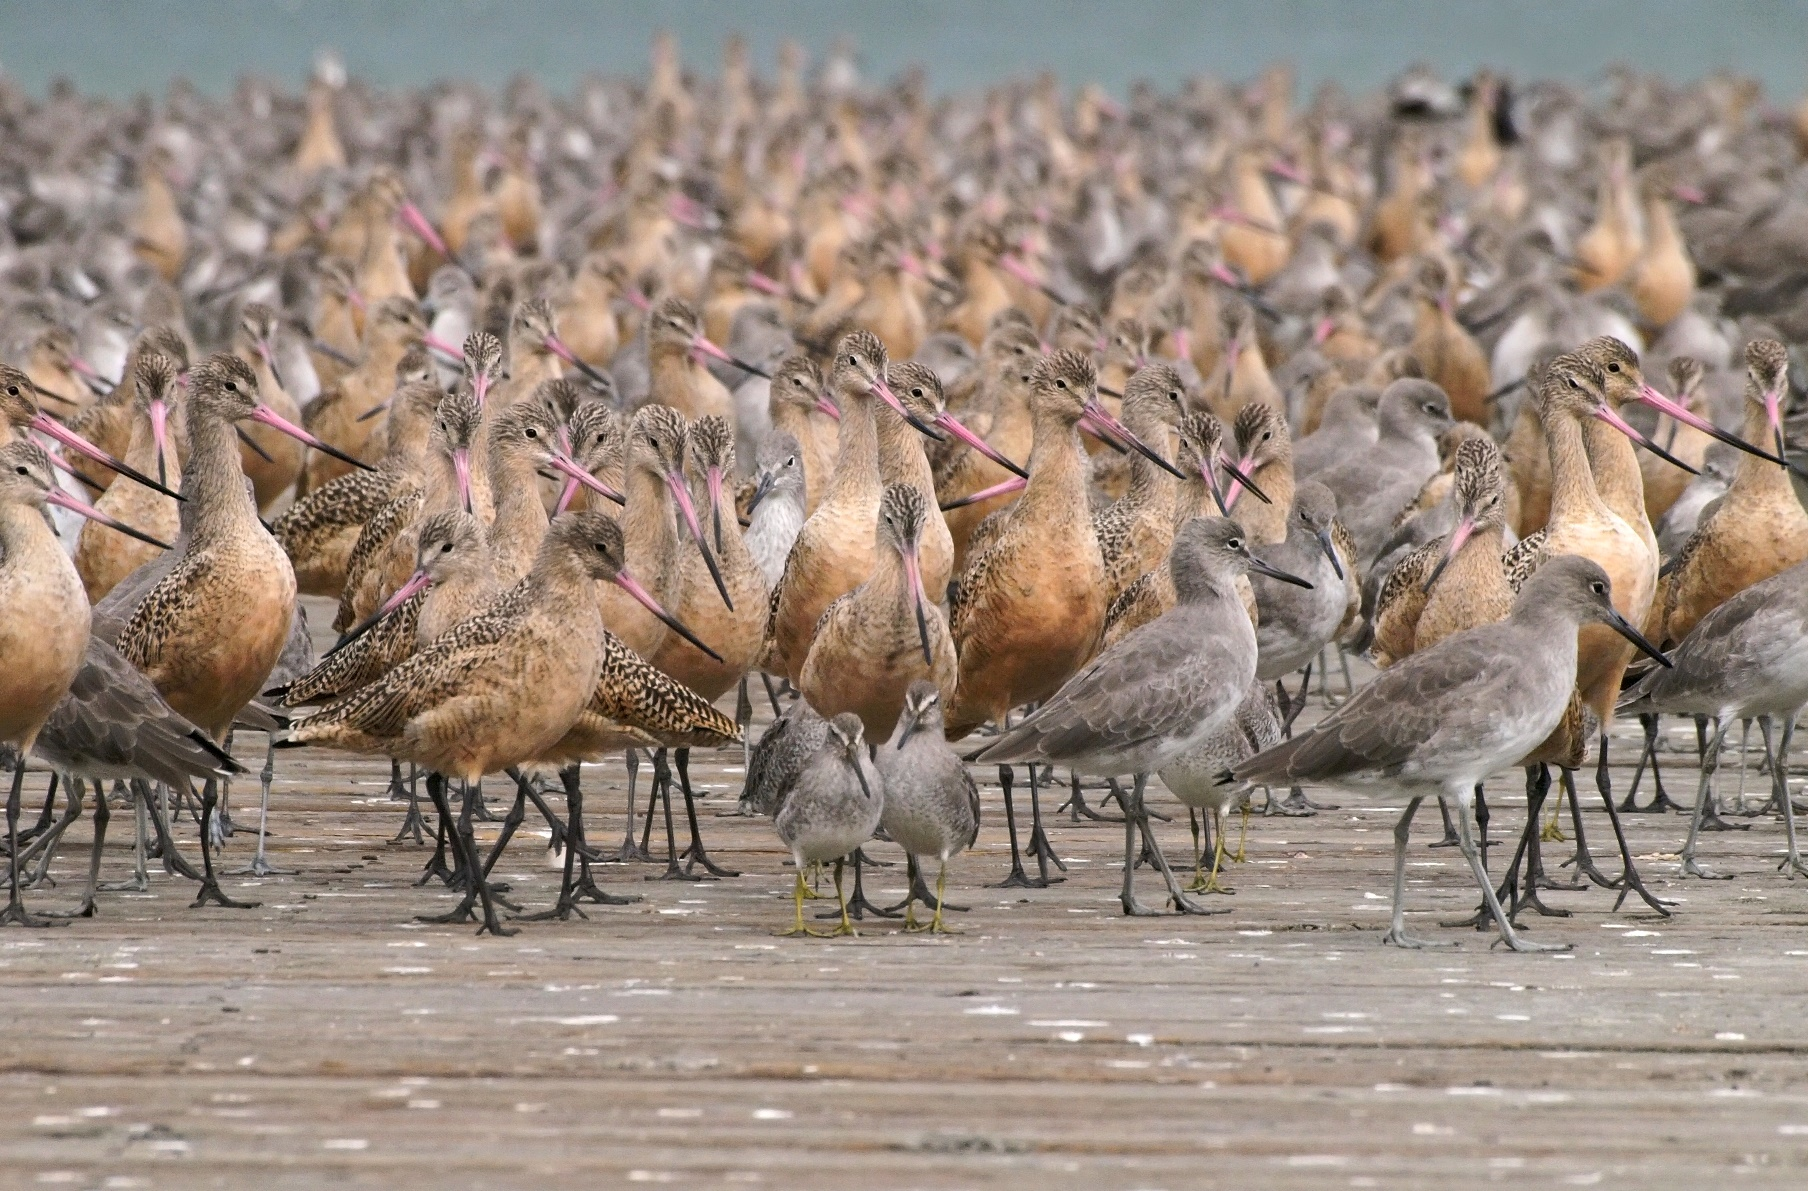 A gathering of godwits, dowitchers, willets, and other shorebirds.